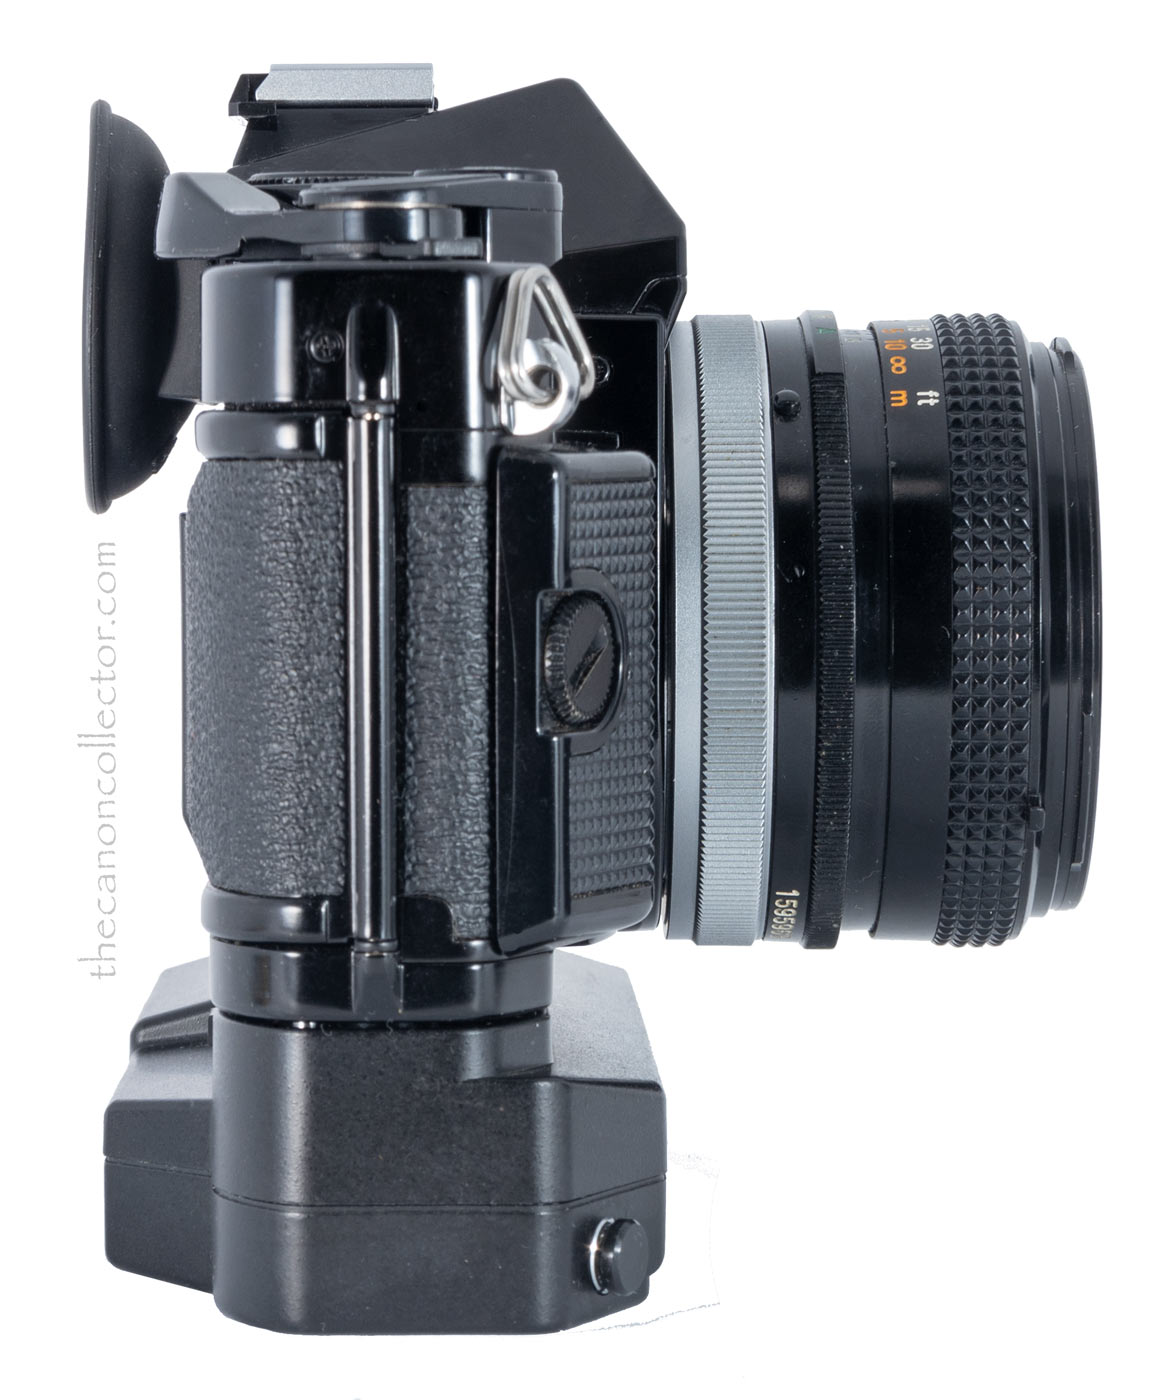 Canon Power Winder A